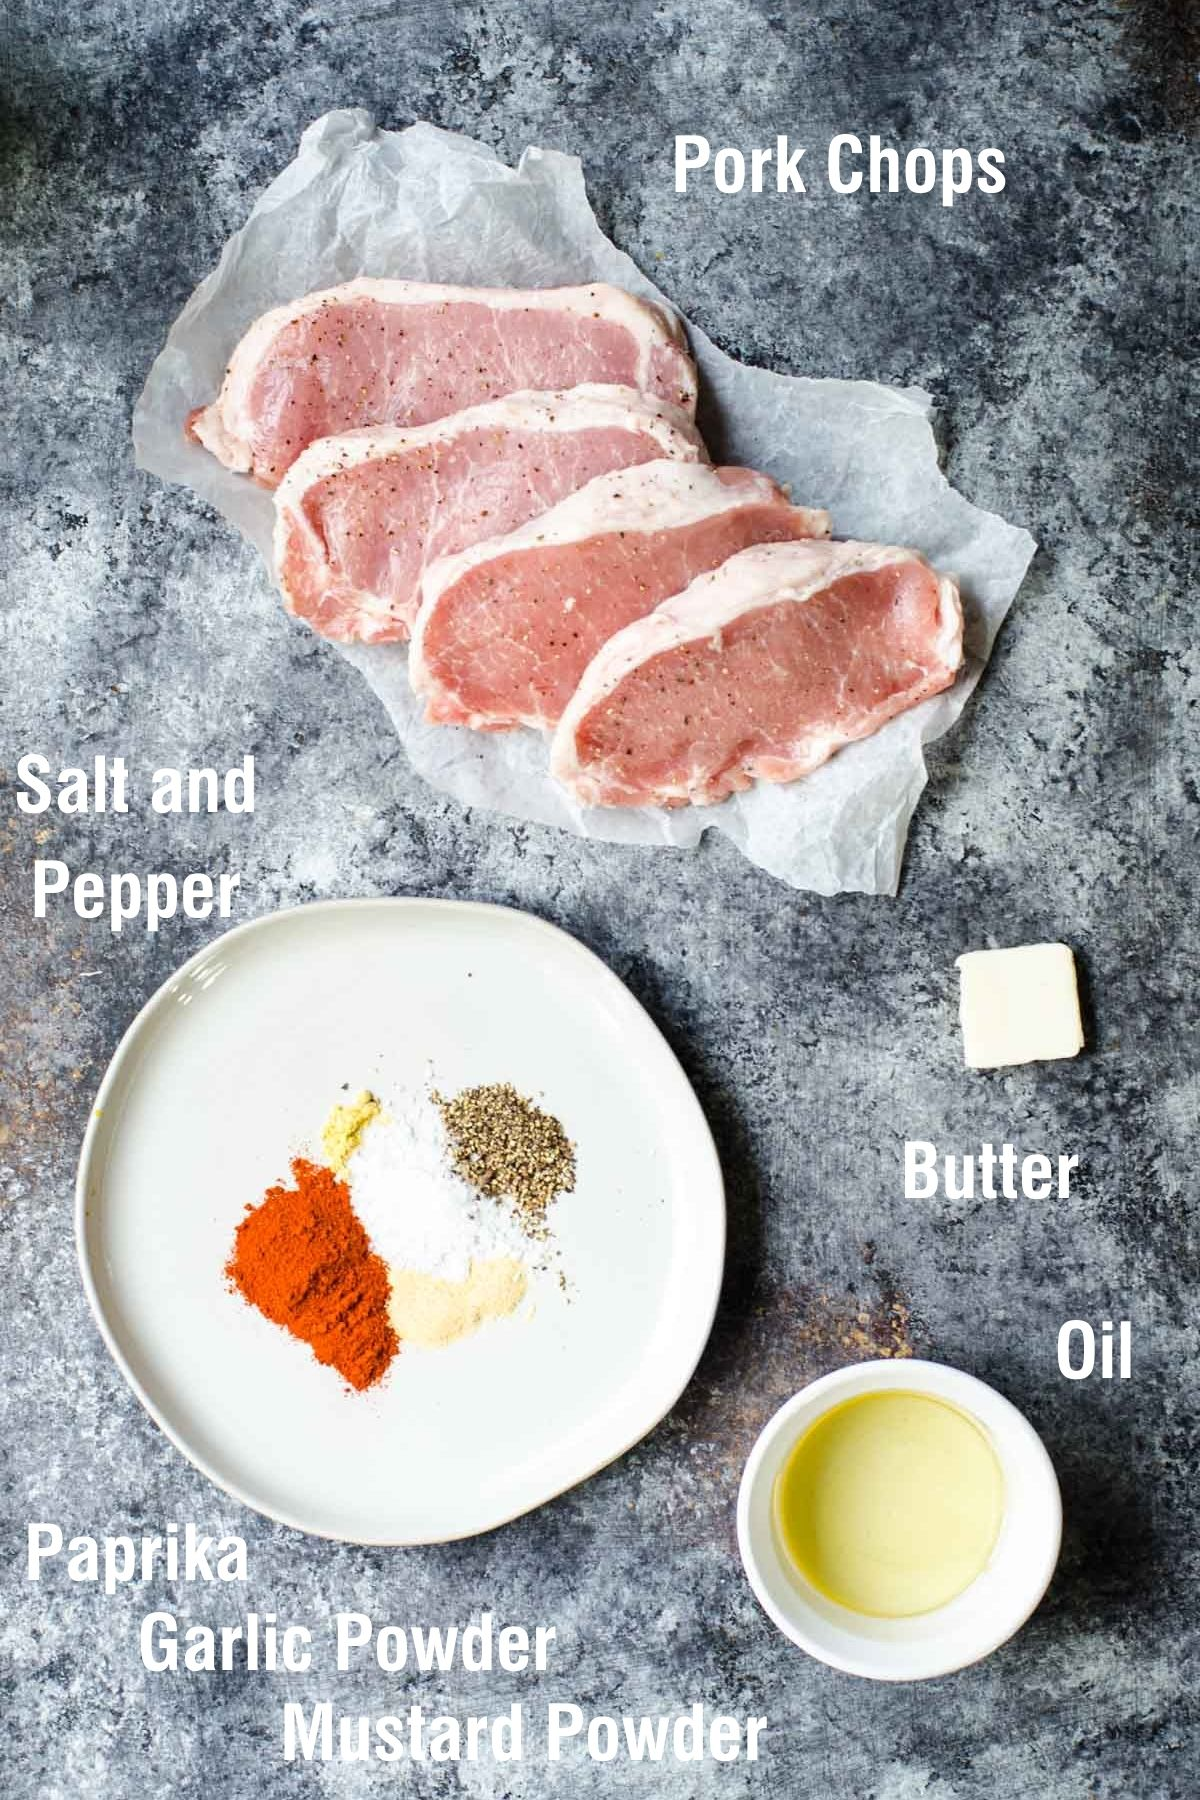 Labeled ingredients for making cast iron pork chops.